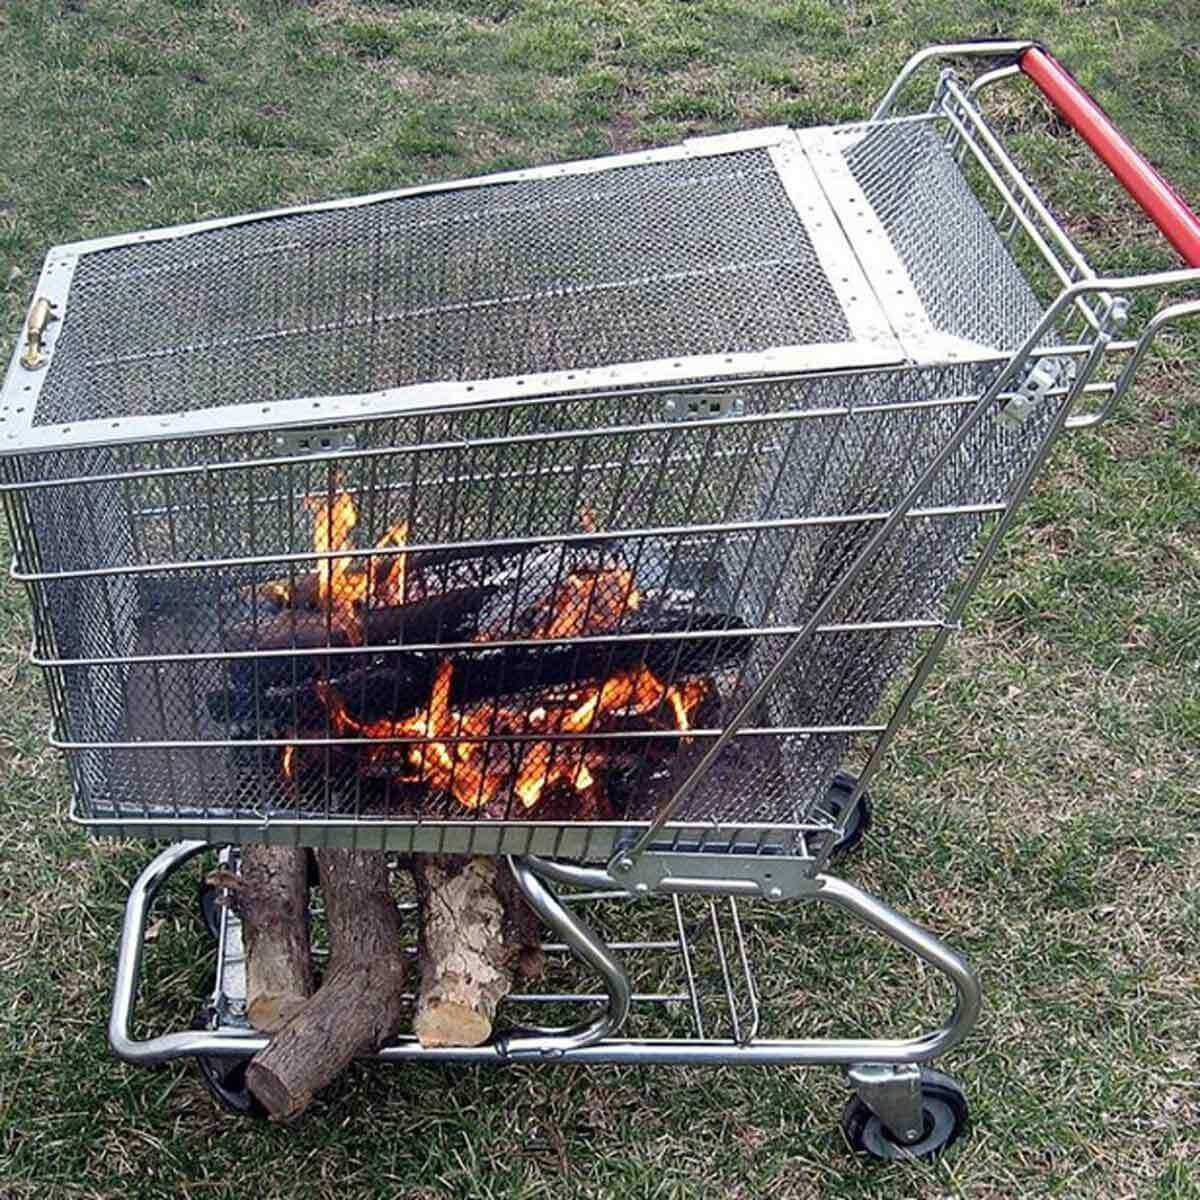 Shopping Cart Fire Pit on wheels